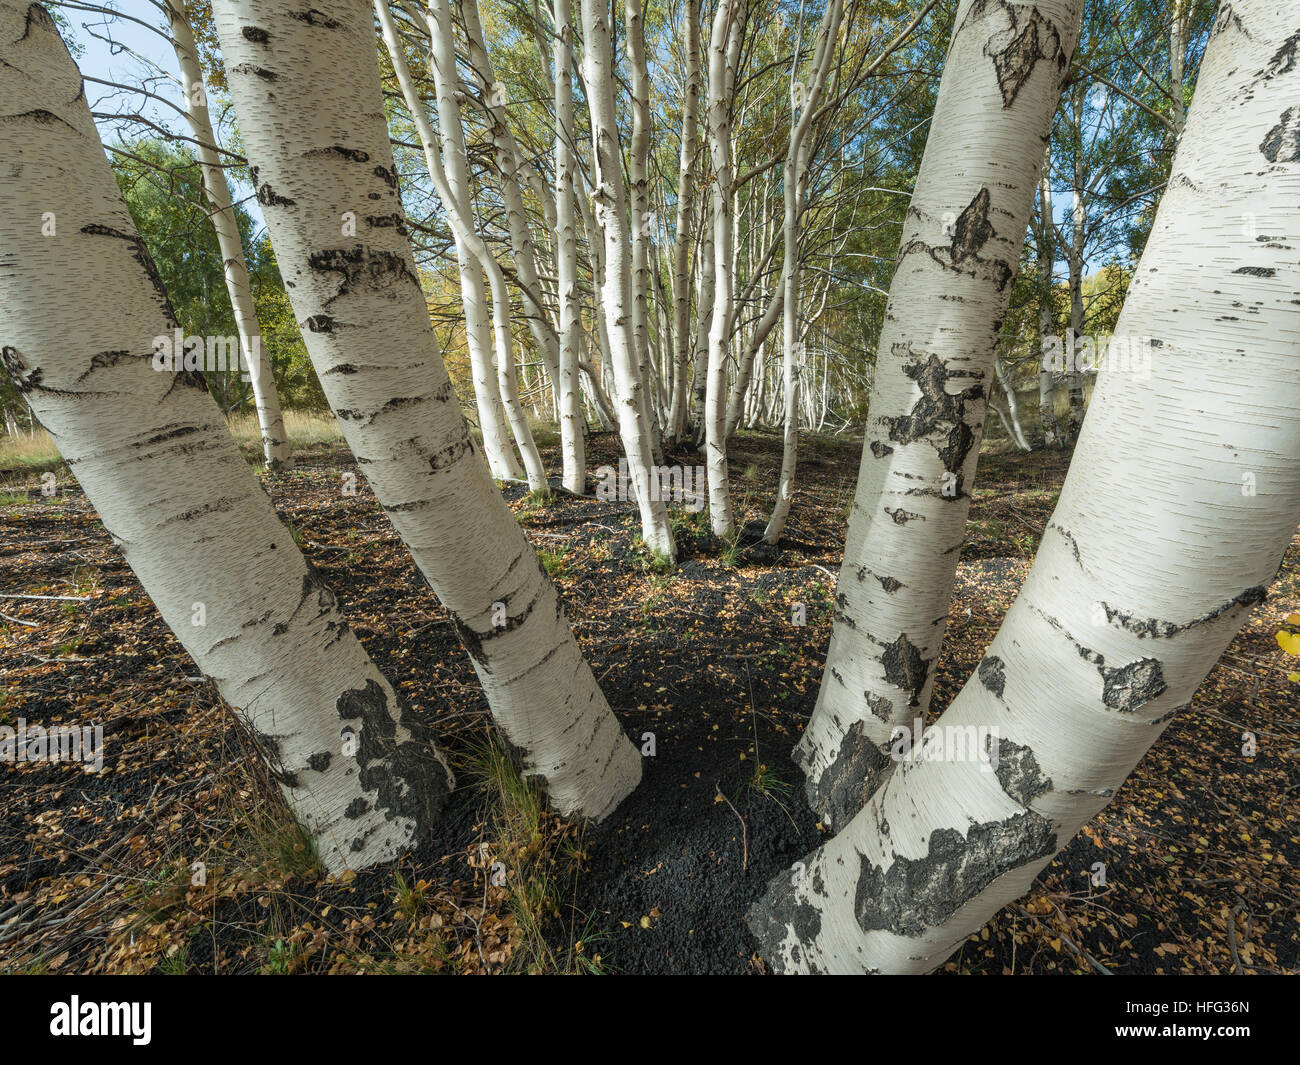 Endemic etna Birch (Betula aetnensis) forest, lava fields from 1865, Monti Sartorius, northeast flank of Mount Etna, - Stock Image